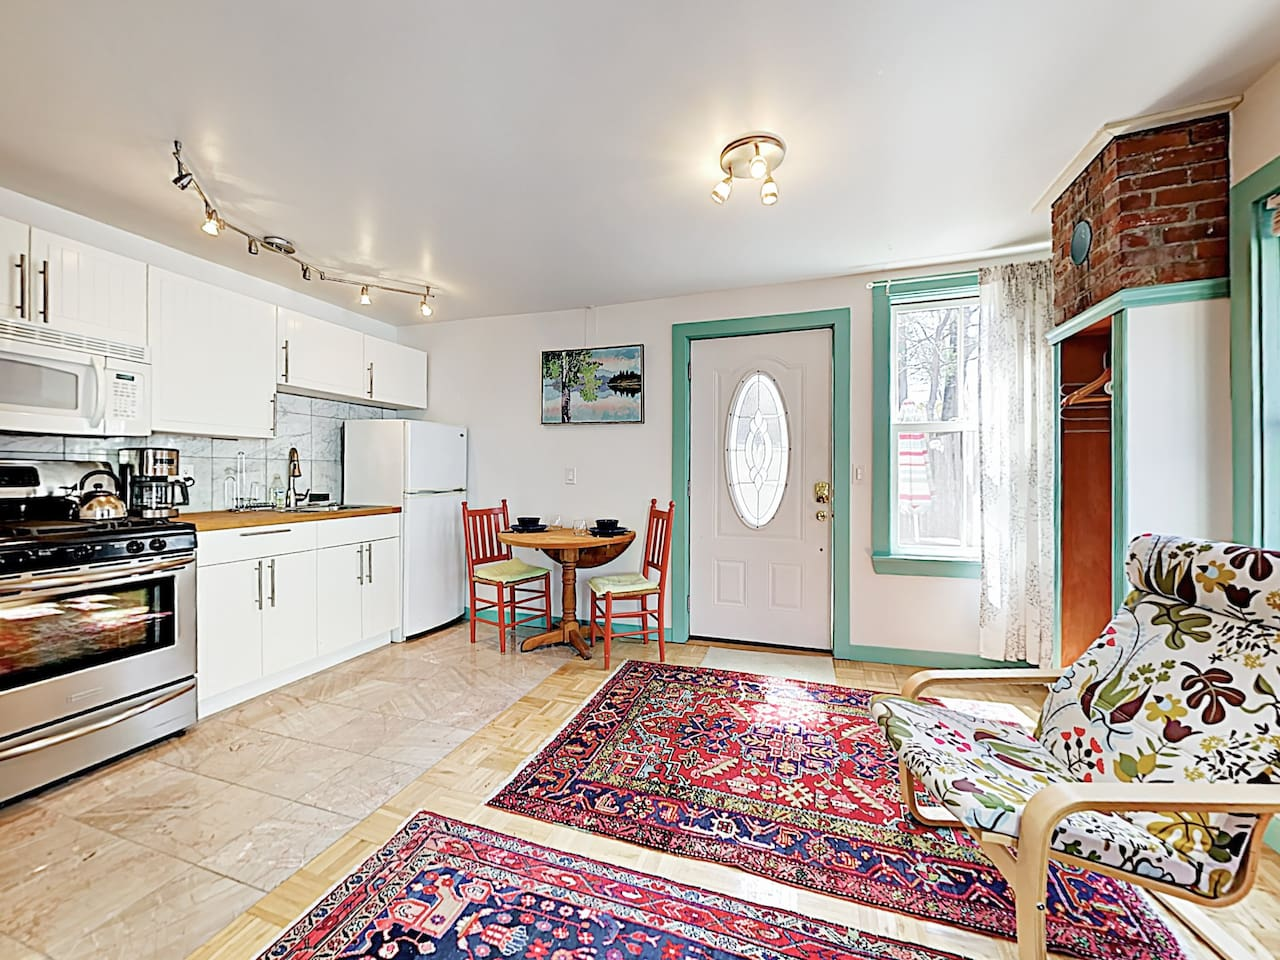 Welcome to Bar Harbor! This apartment is professionally managed by TurnKey Vacation Rentals.